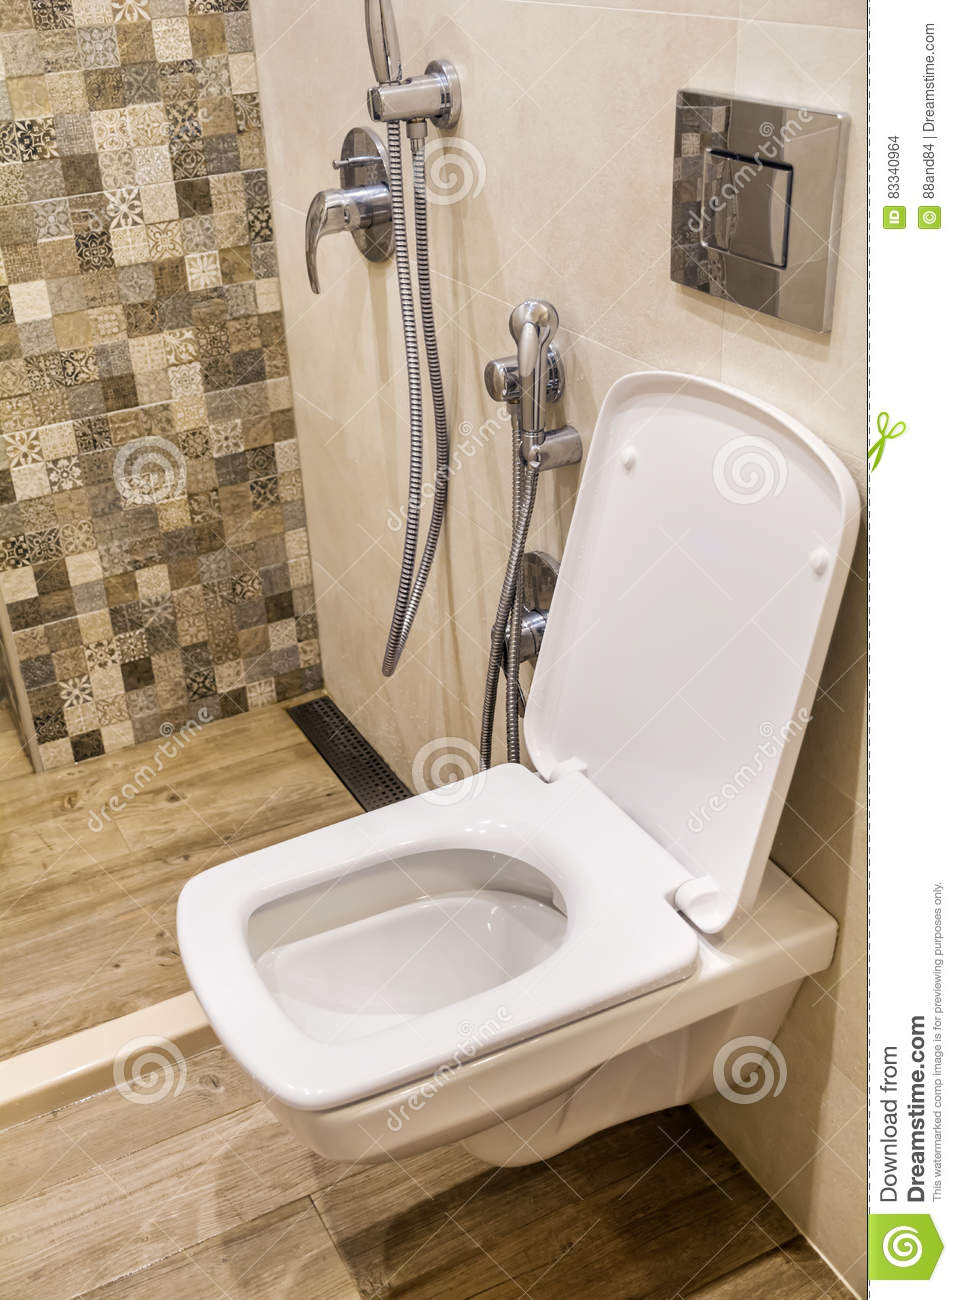 Hygienic shower in the toilet. Installation of hygienic shower in the toilet: instructions 60